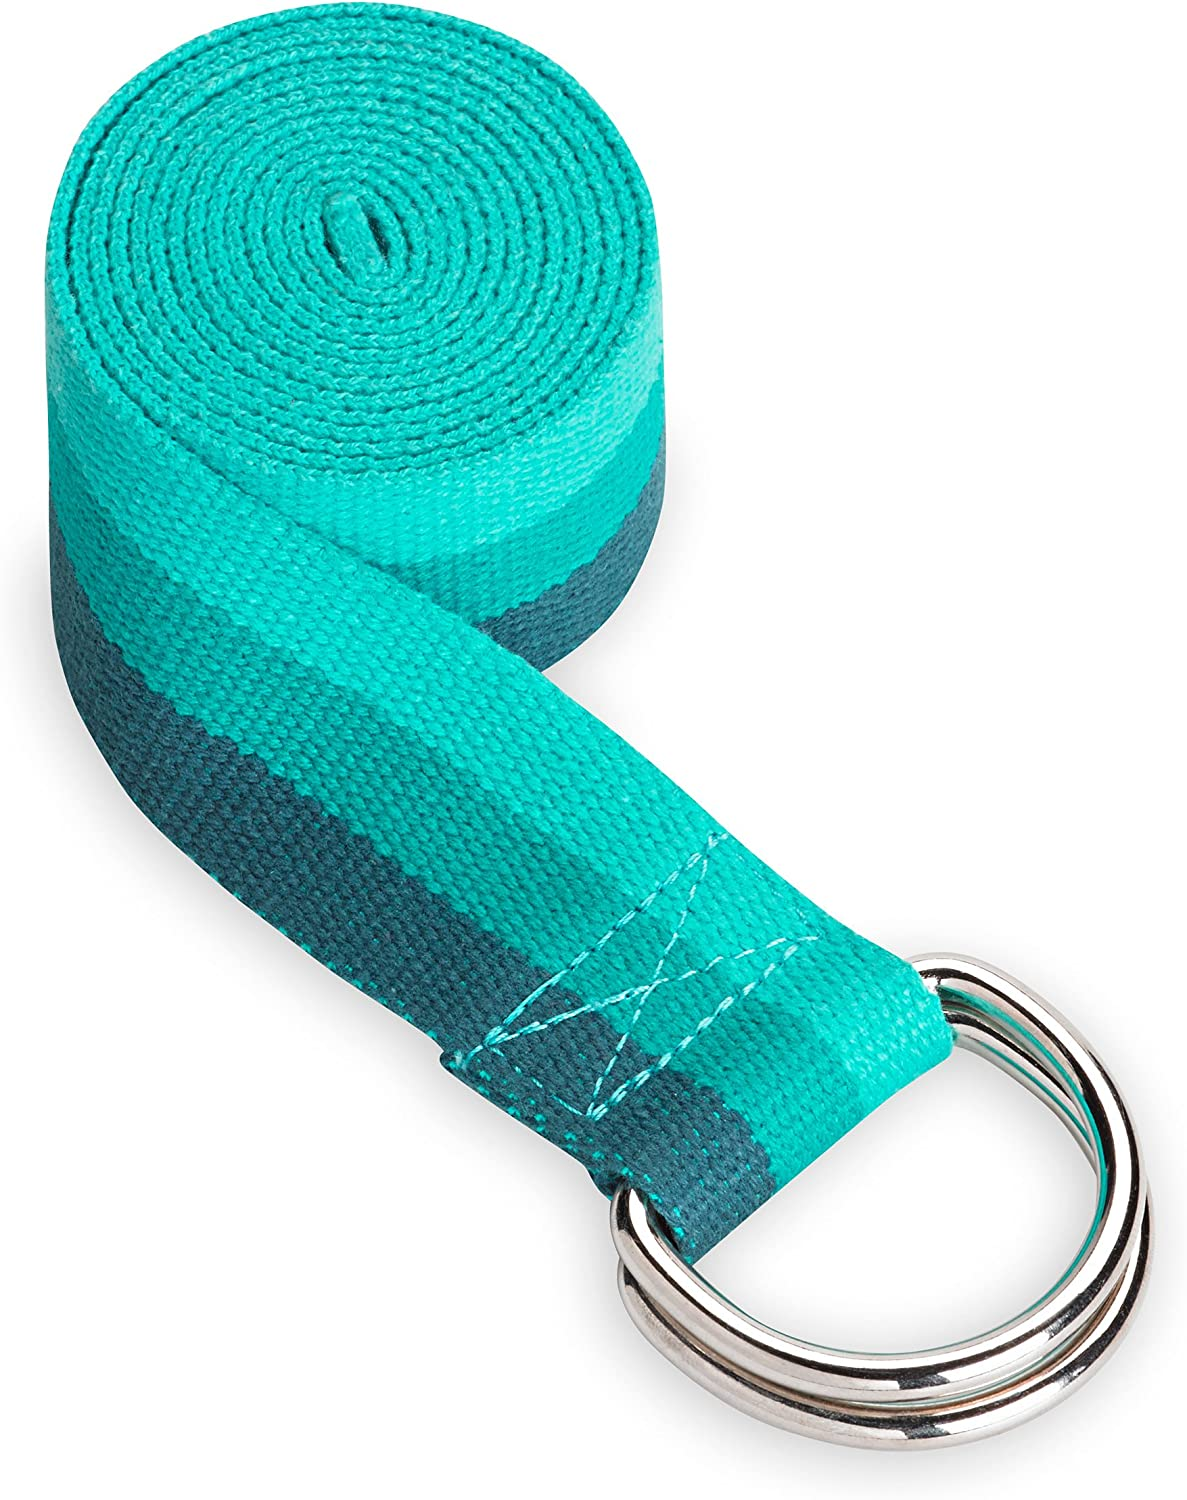 Gaiam Yoga Strap (6ft) Stretch Band with Adjustable Metal D-Ring Buckle Loop | Exercise & Fitness Stretching for Yoga, Pilates, Physical Therapy, ...